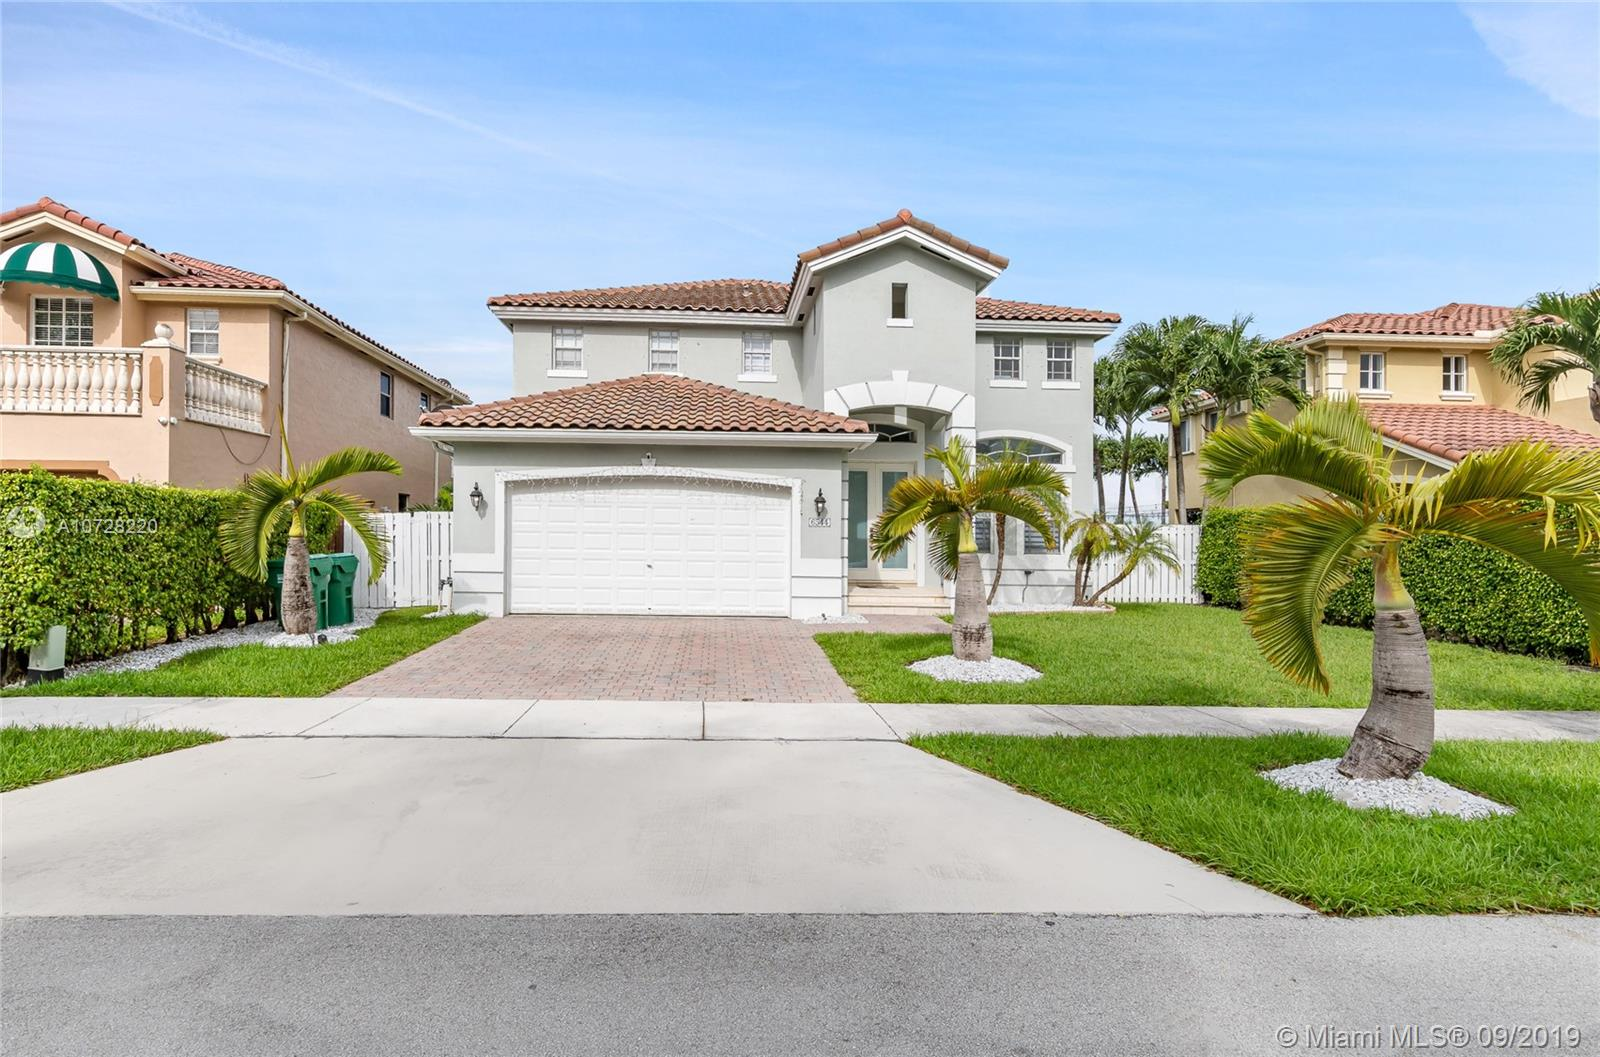 6544 SW 166th Ct, Kendall, Florida